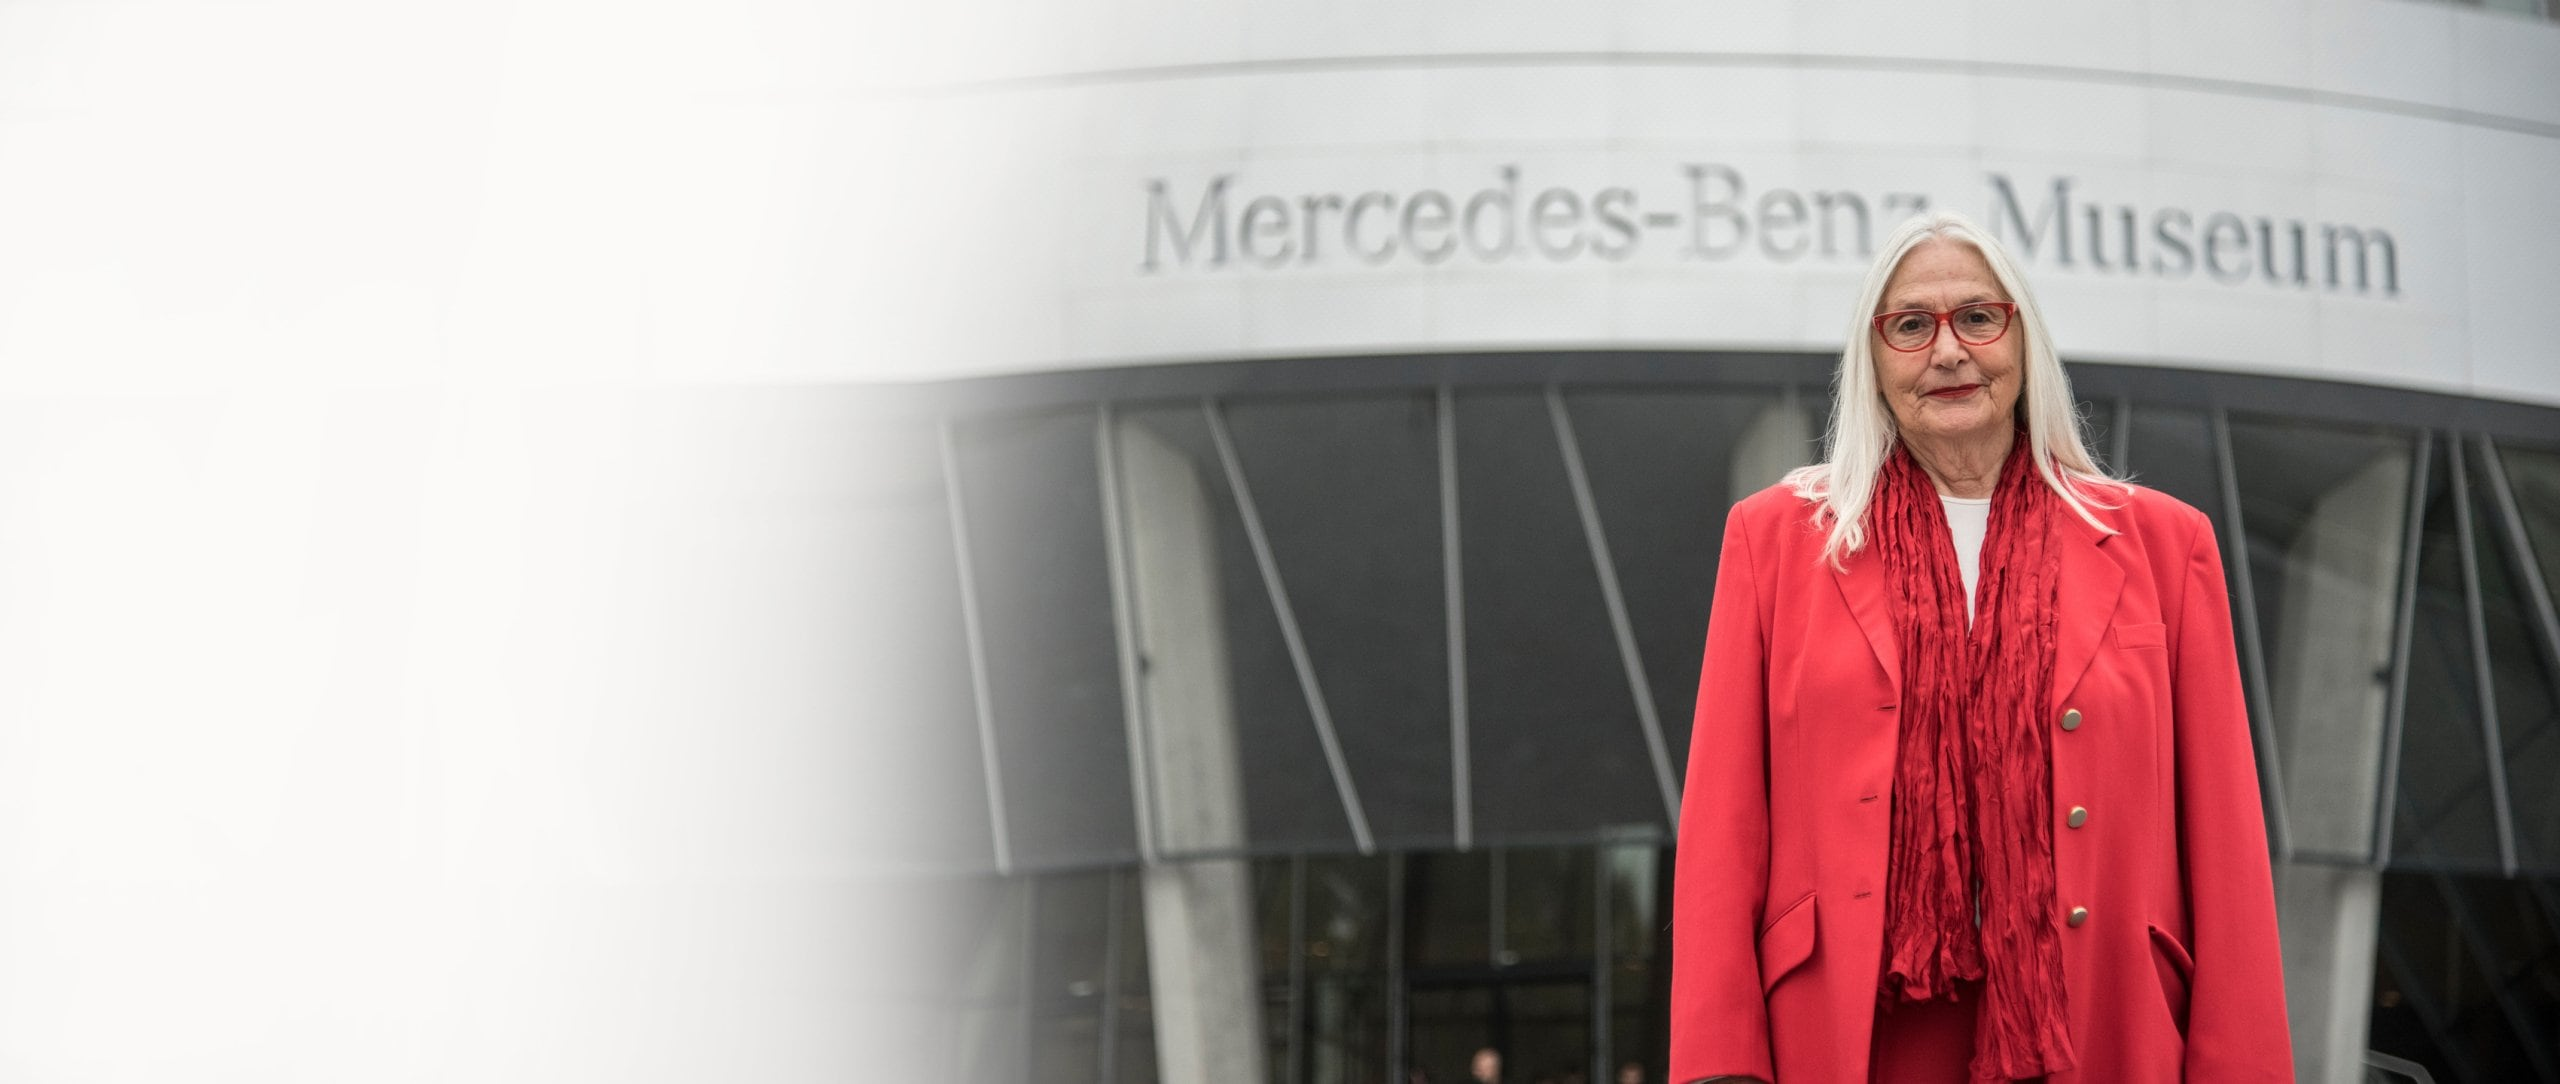 Jutta Benz in front of the Mercedes-Benz Museum.